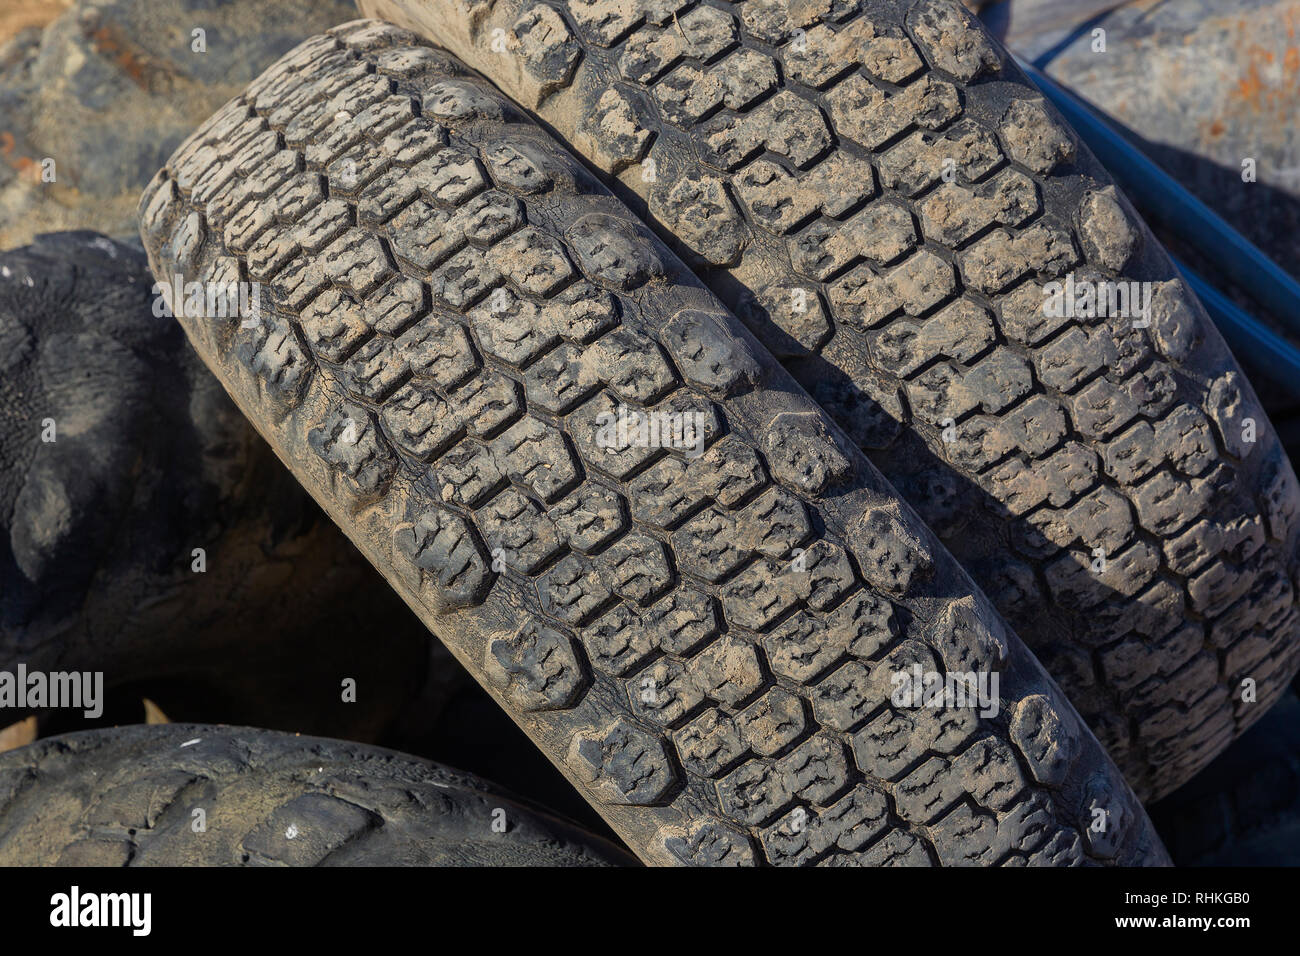 Old tires thrown in a pile - Stock Image